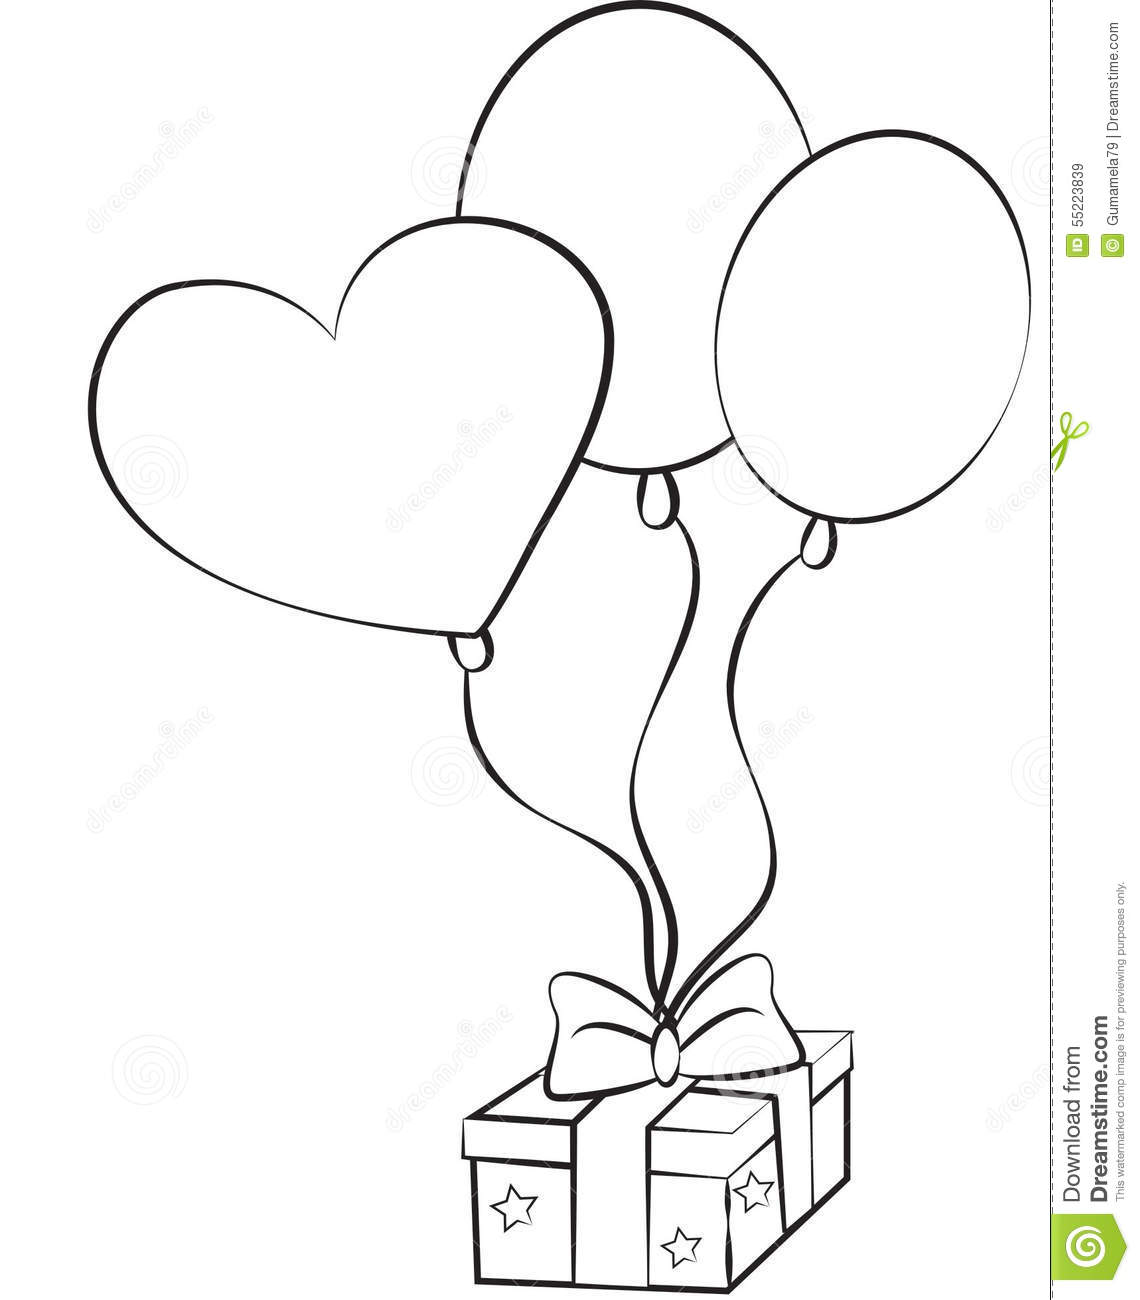 drawings of birthday balloons ; stock-image-birthday-balloons-gift-illustrated-55223839